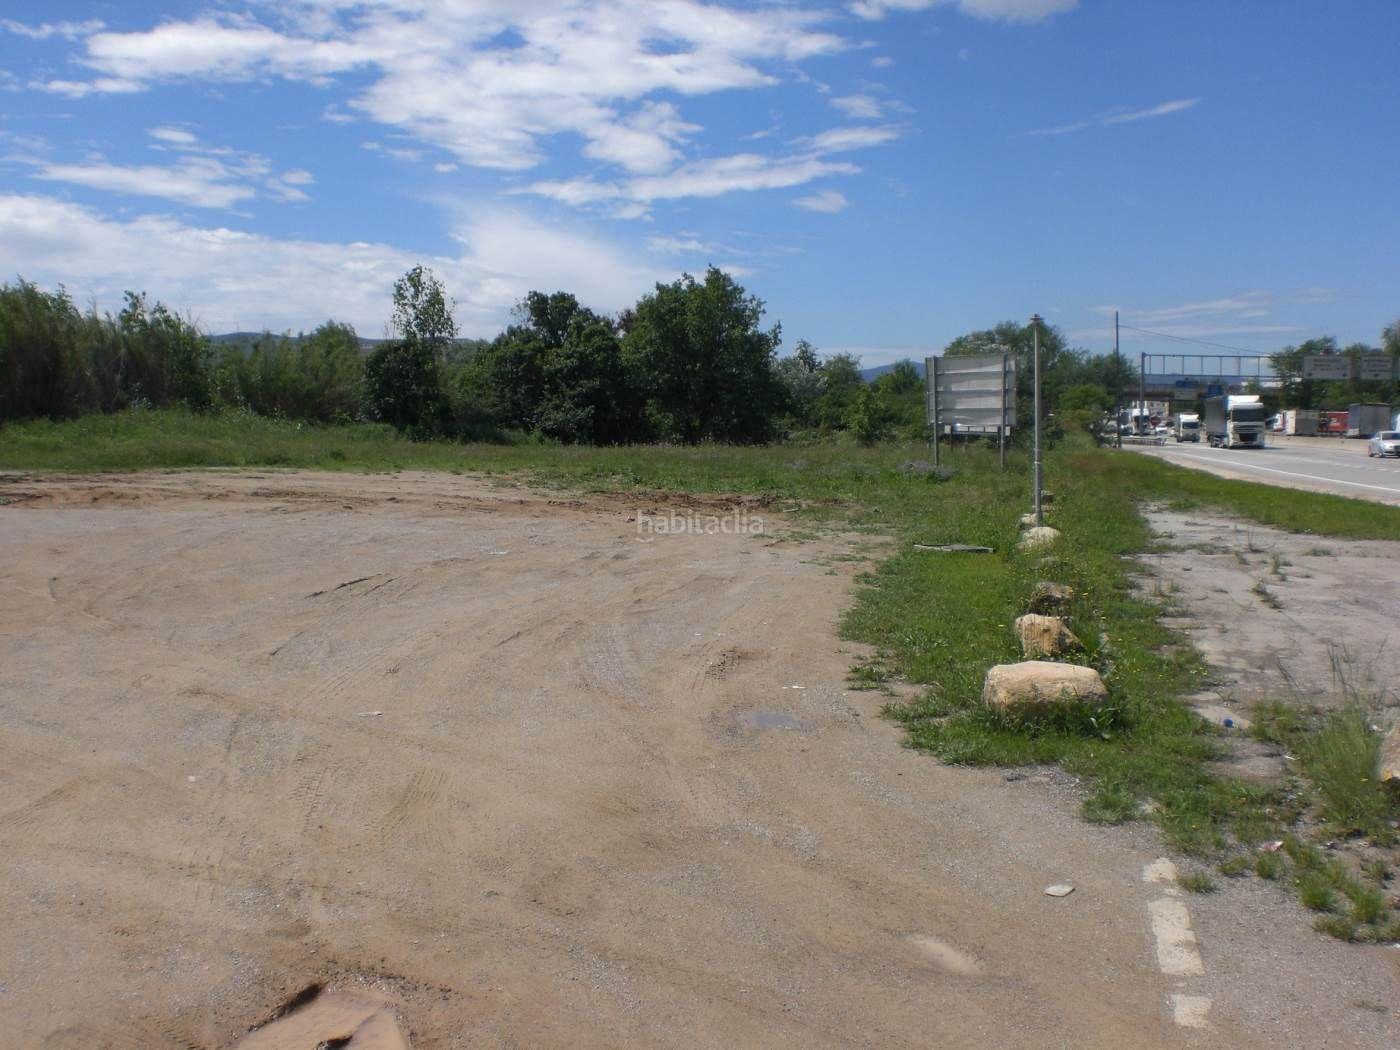 Industrial plot in Parets del Vallès. Terreno industrial en venta en parets del vallès  con fachada a